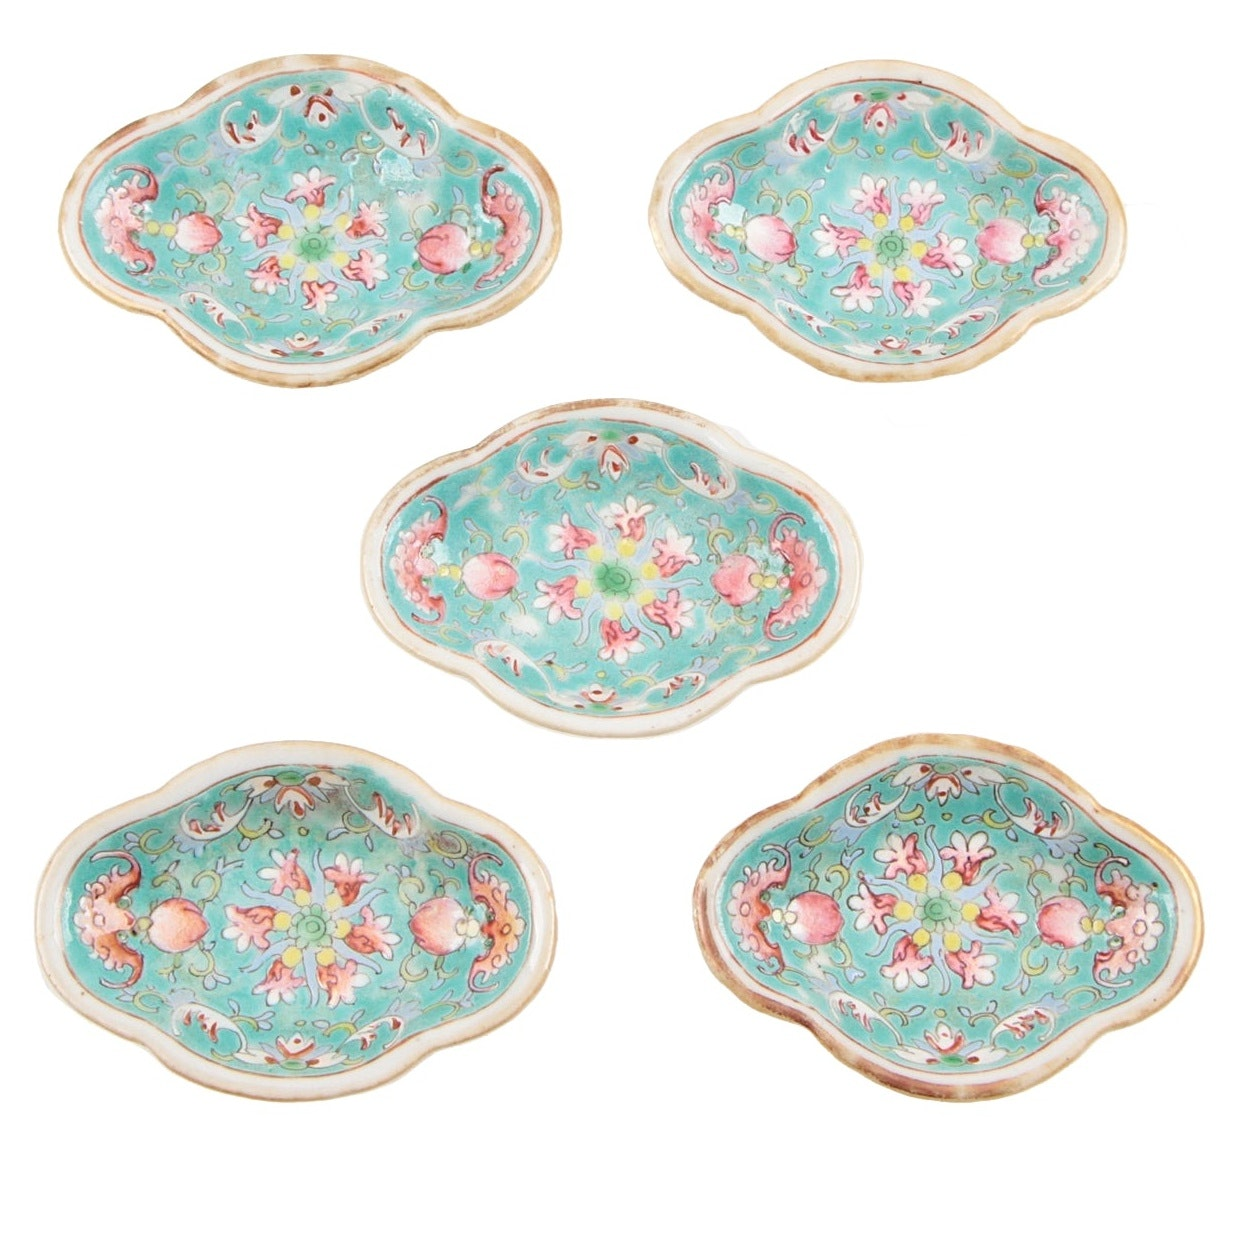 Five Chinese Lozenge Form Porcelain Condiment Dishes, Qing Dynasty